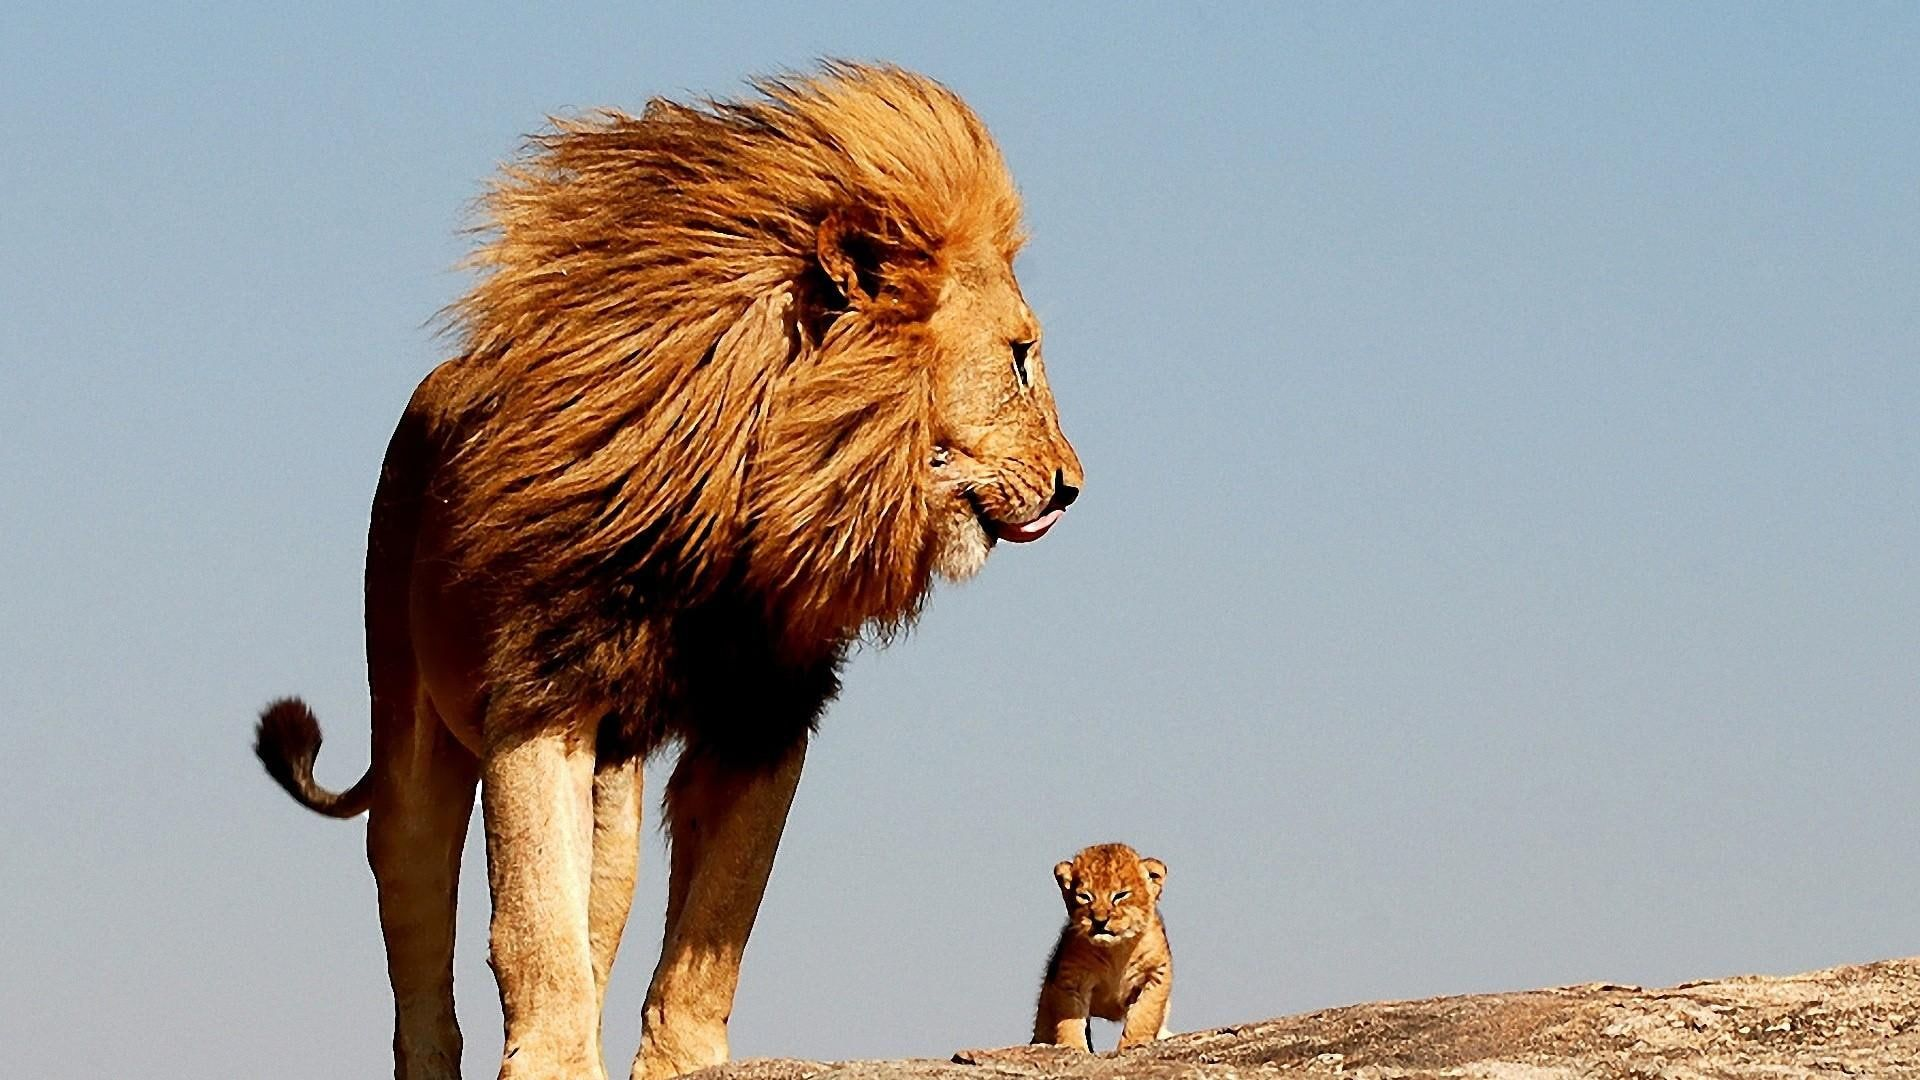 Lion Cute Baby Lion King Father 1080p Wallpaper Hdwallpaper Desktop Lion Lion King Lions